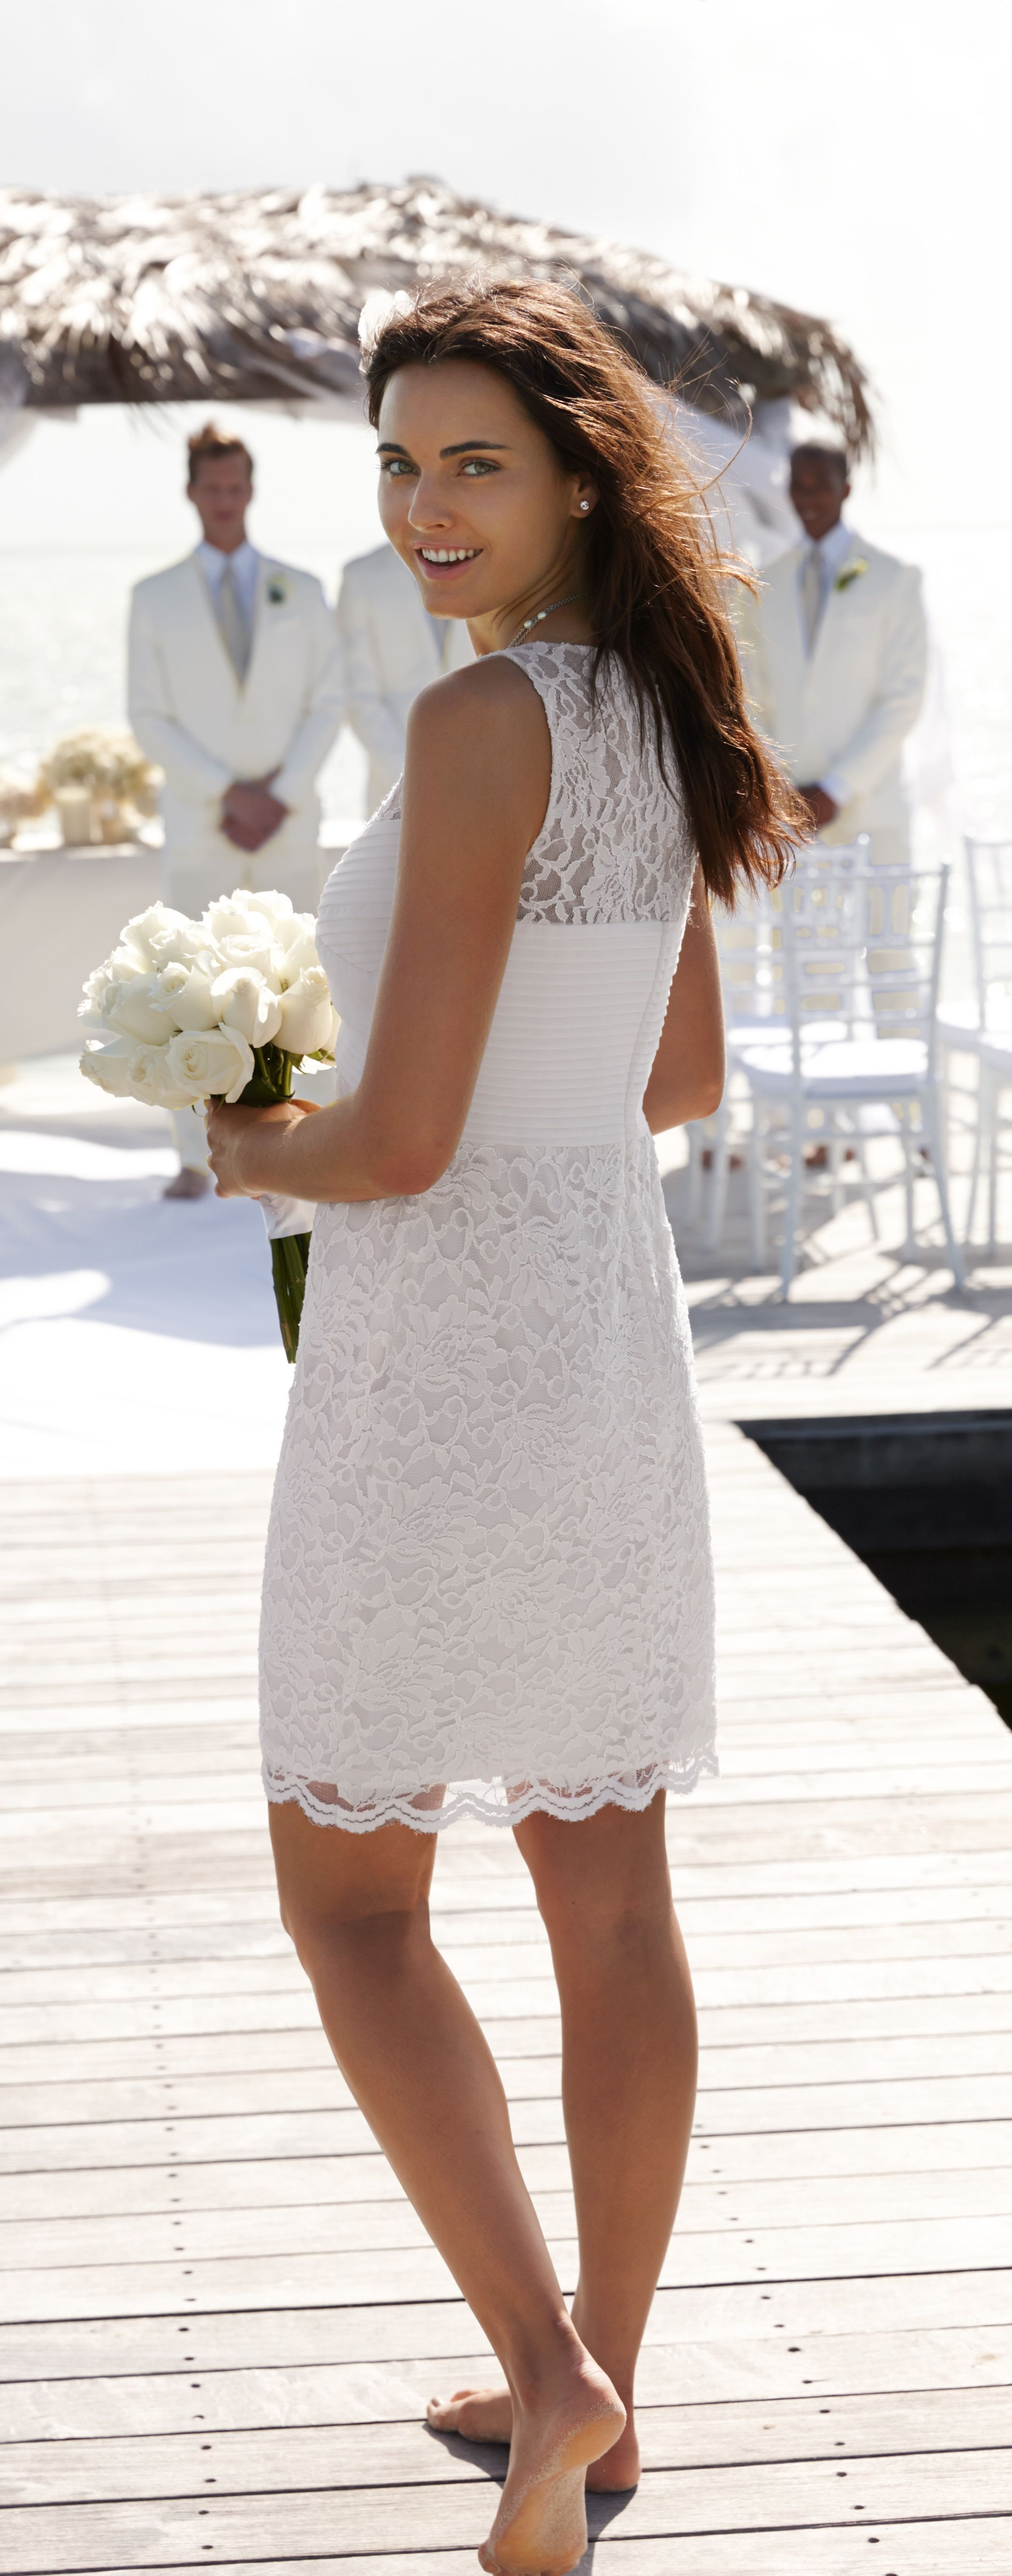 Floral cotton bodysuit lace bridesmaids lauren ralph laurens delicate lace bridesmaid dresses lend any beach wedding a touch of quiet elegance ombrellifo Choice Image